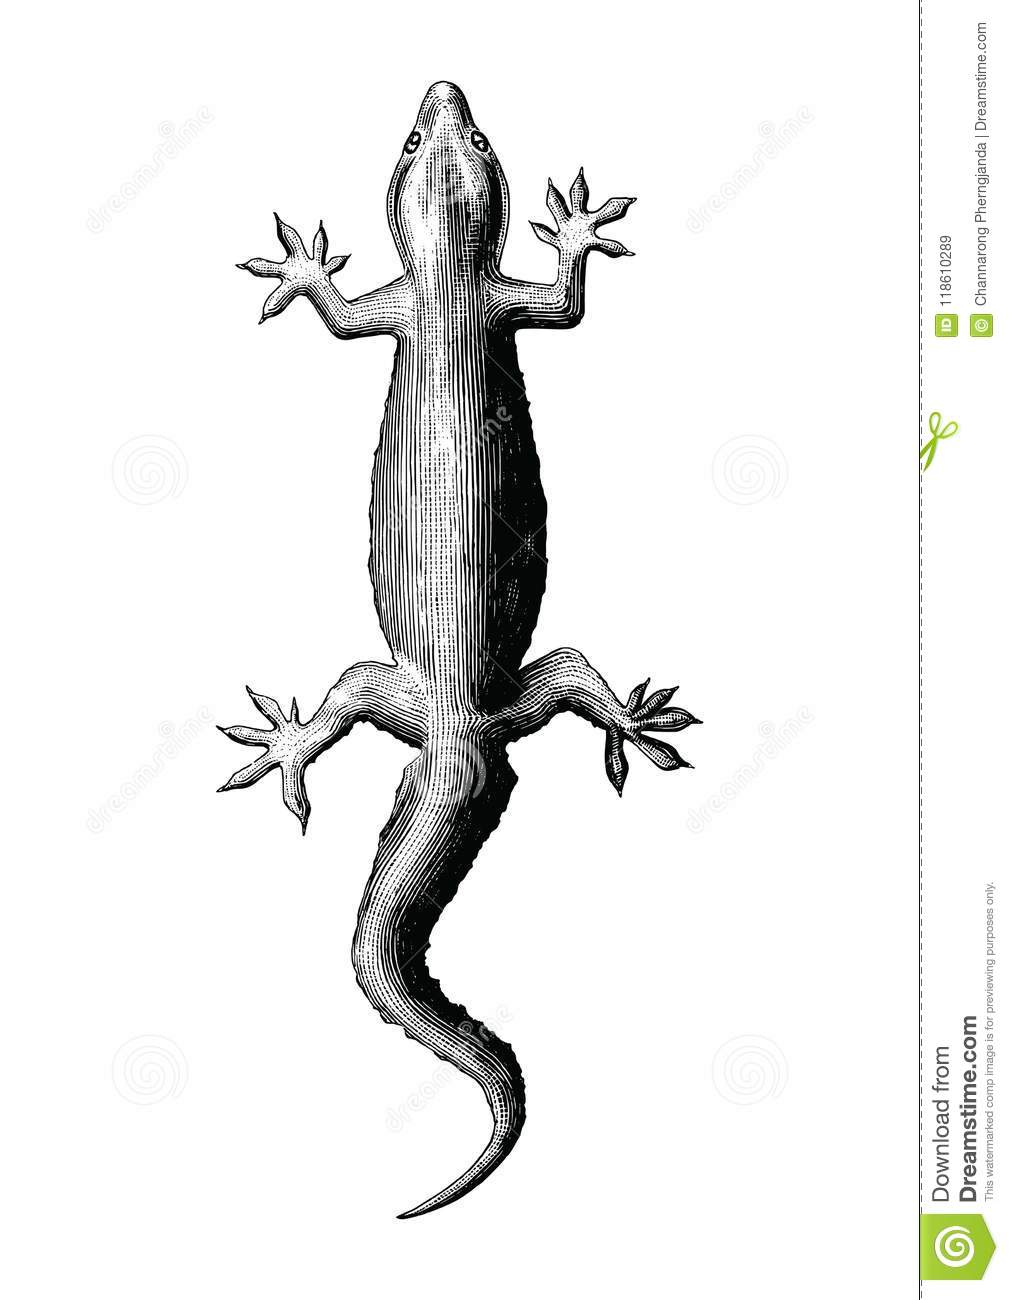 52db696f5 Gecko Hand Drawing Vintage Style Stock Vector - Illustration of clip ...